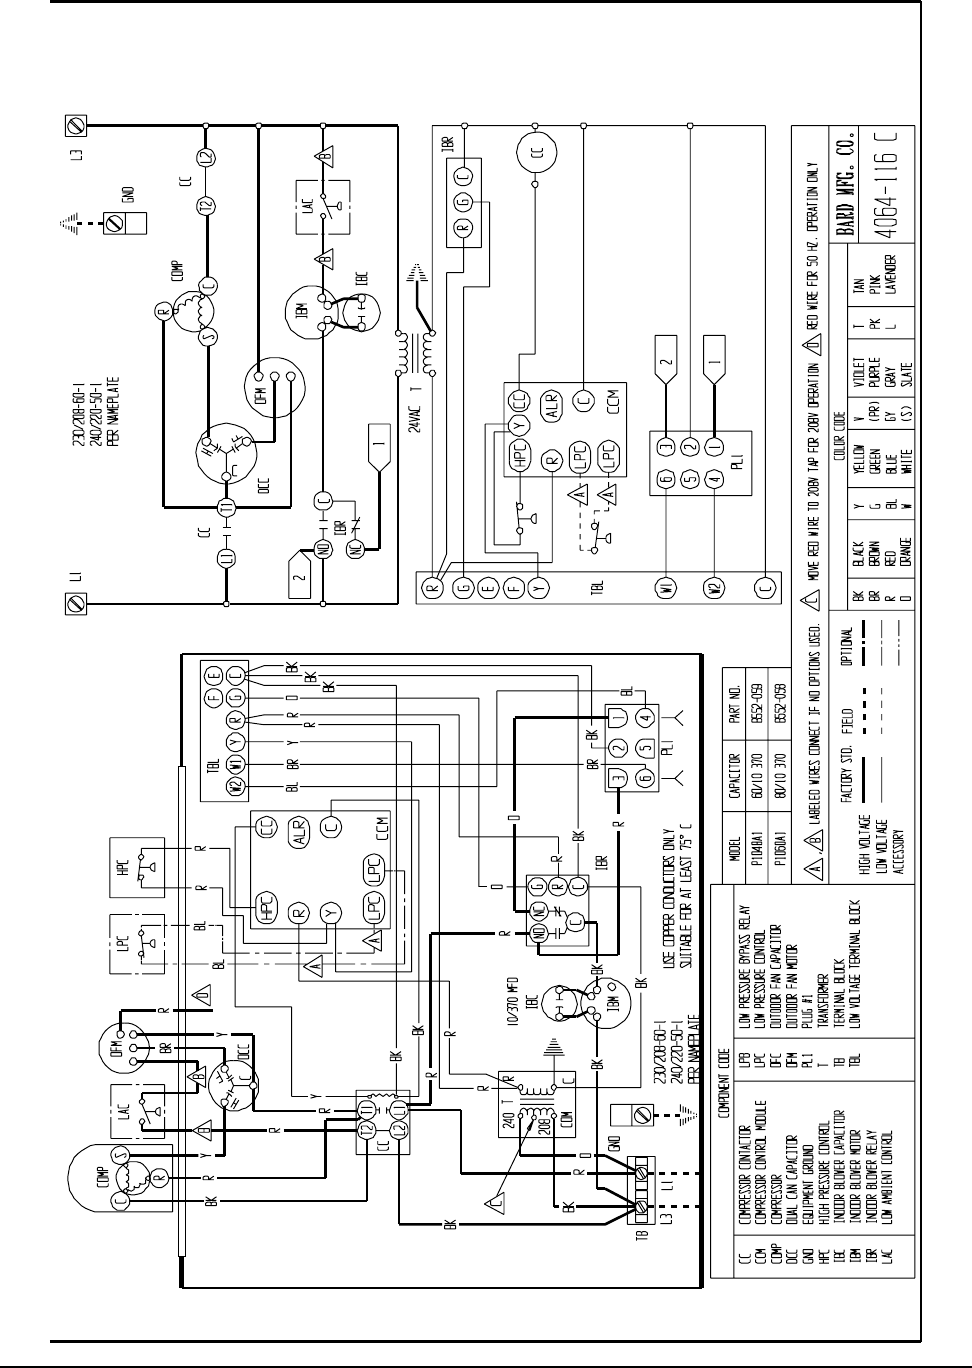 Bard Air Conditioner Wiring Diagram : Page of bard air conditioner p a user guide